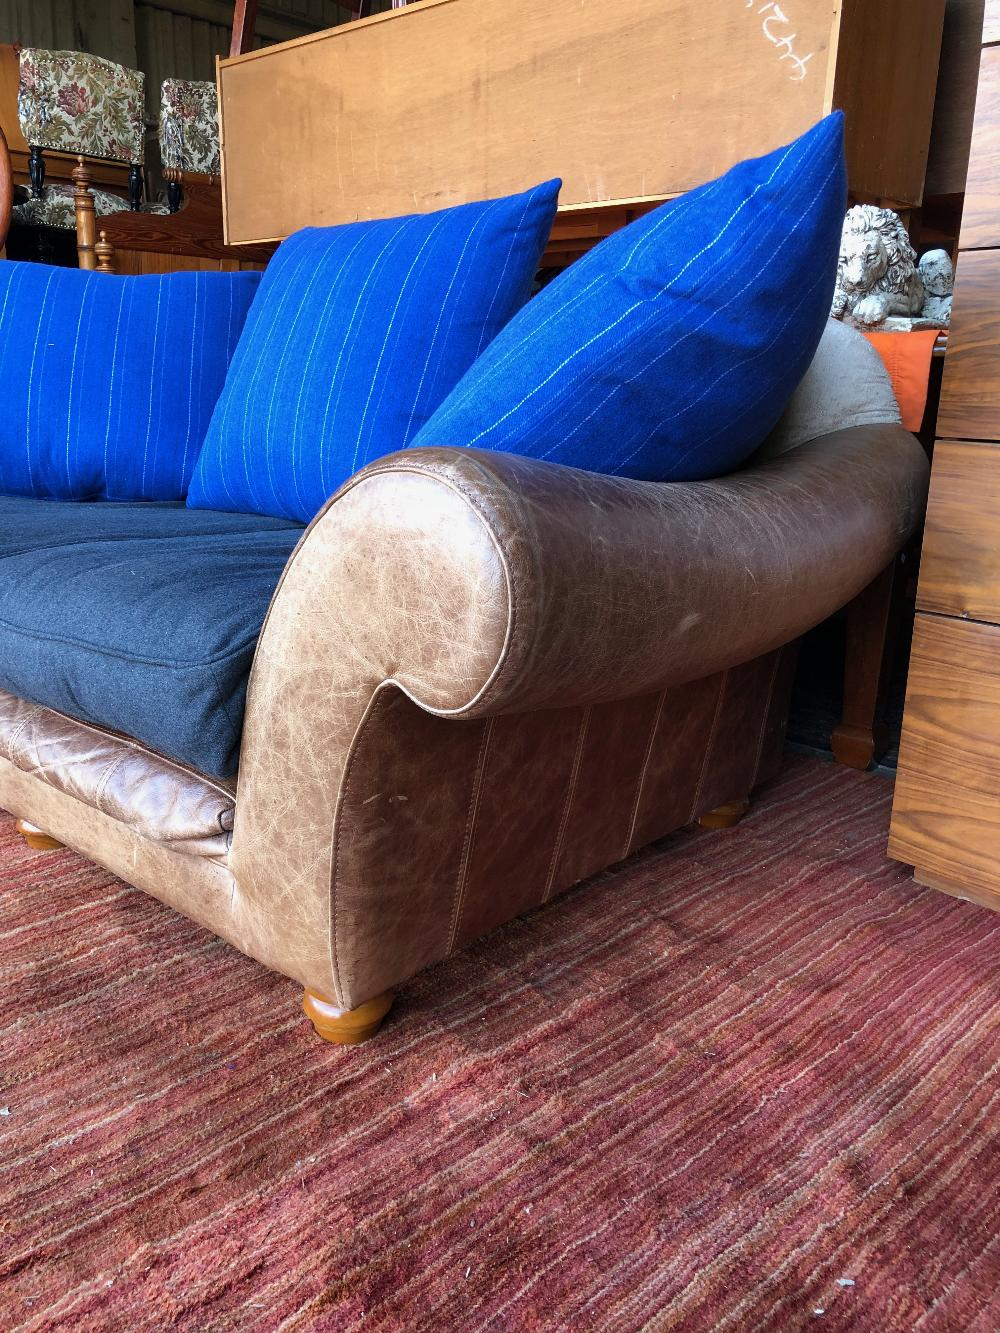 Lot 43 - Vintage Halo 2 Seater Tetrad Style Sofa